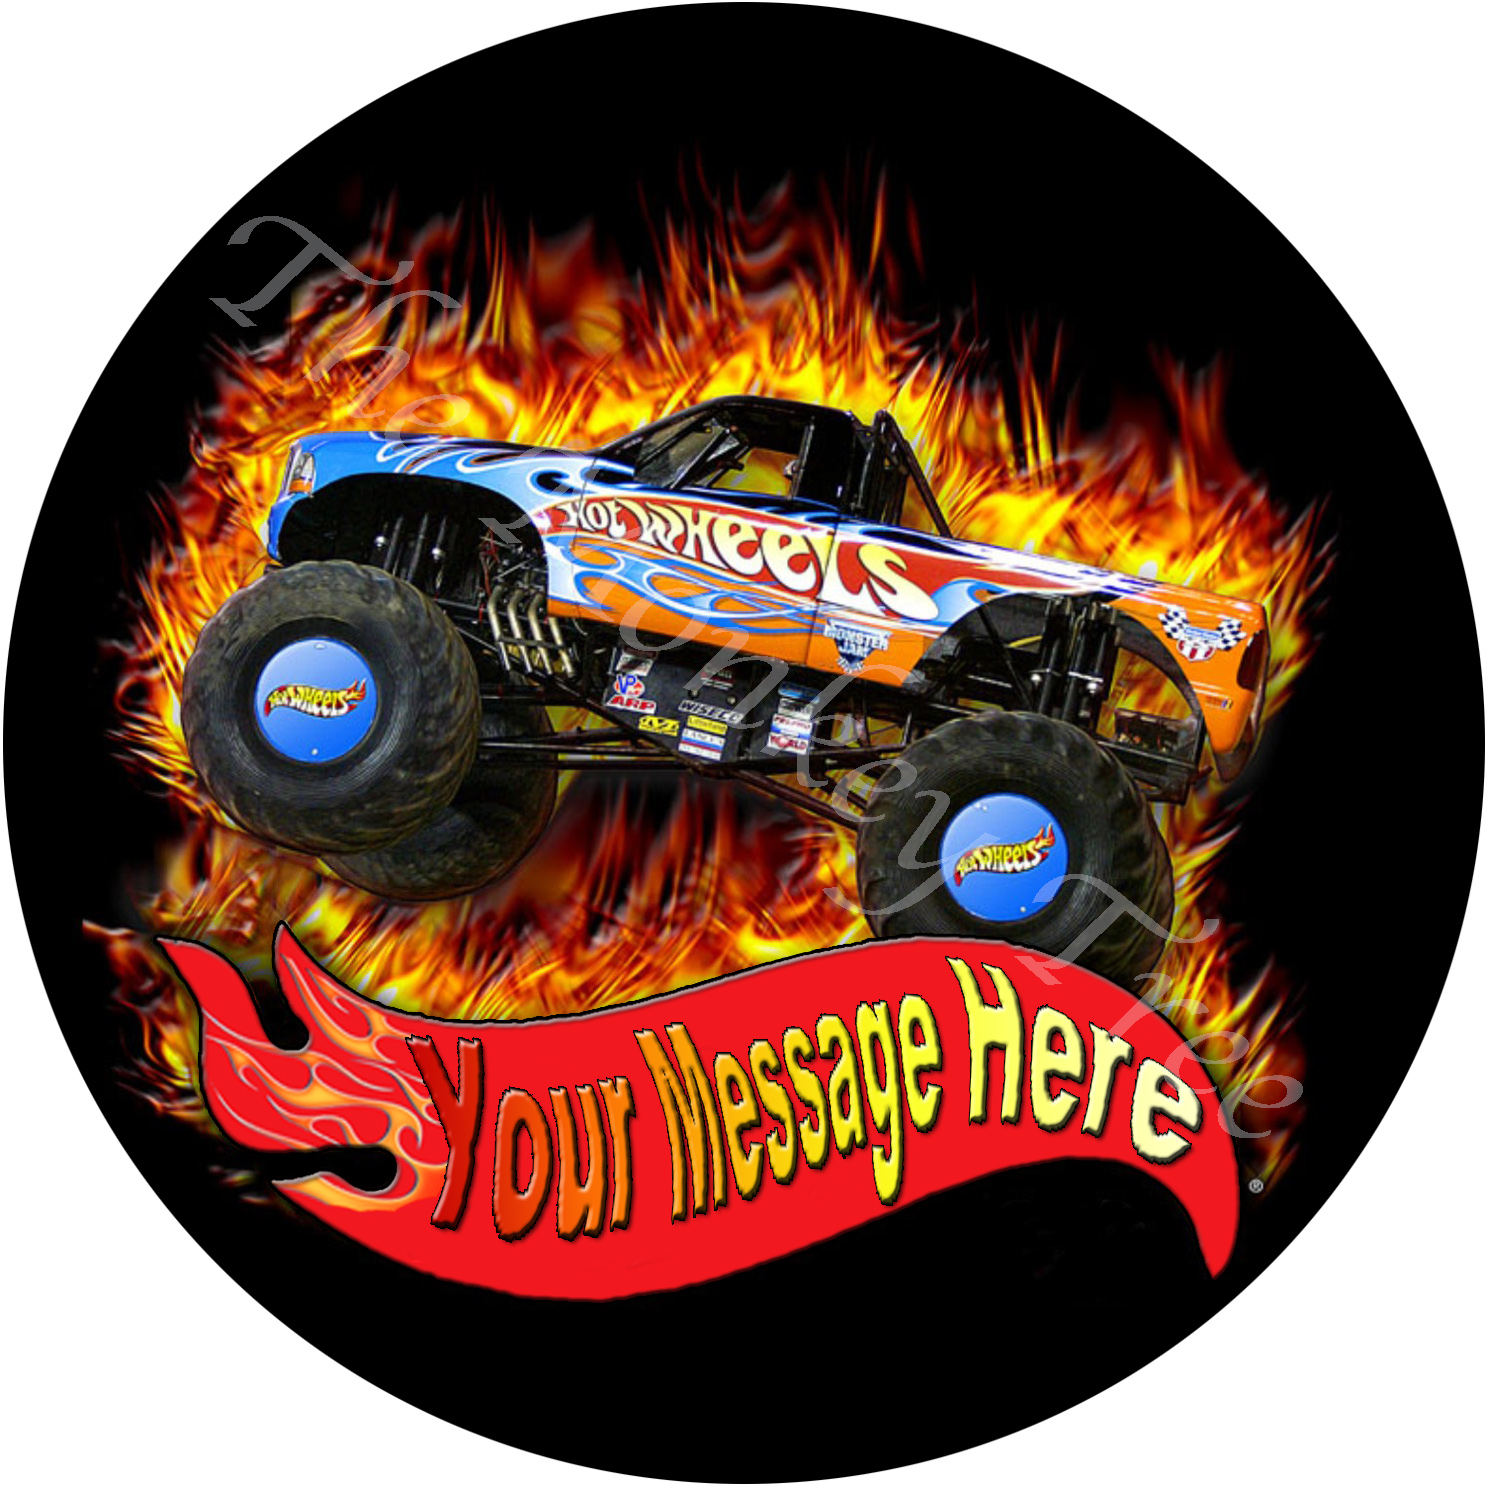 Hot Wheels Monster Truck Personalised Edible Cake Image The Monkey